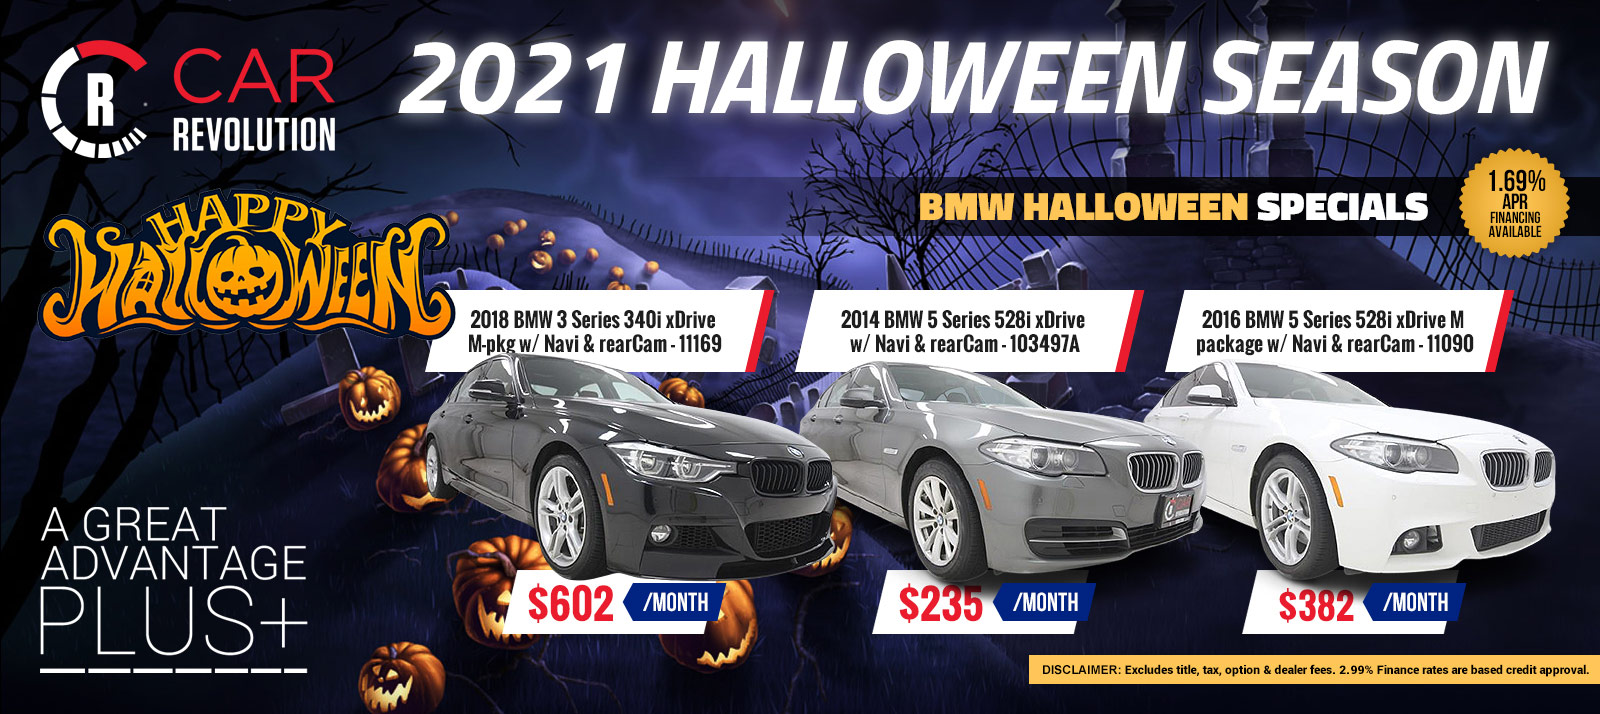 BMW Halloween Season Specials!